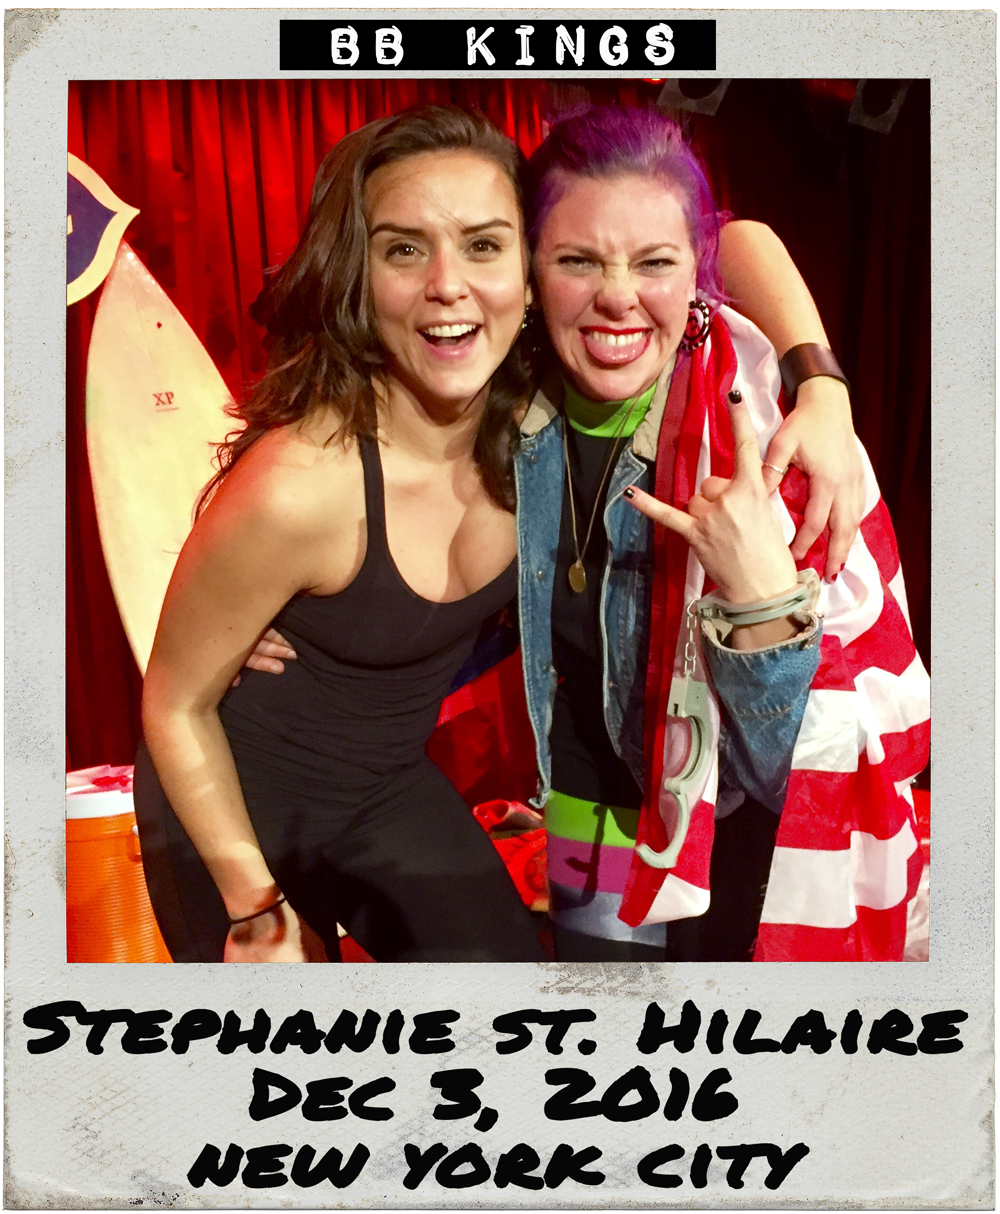 12_03_16_Stephanie-St.-Hilaire_BB-Kings.png